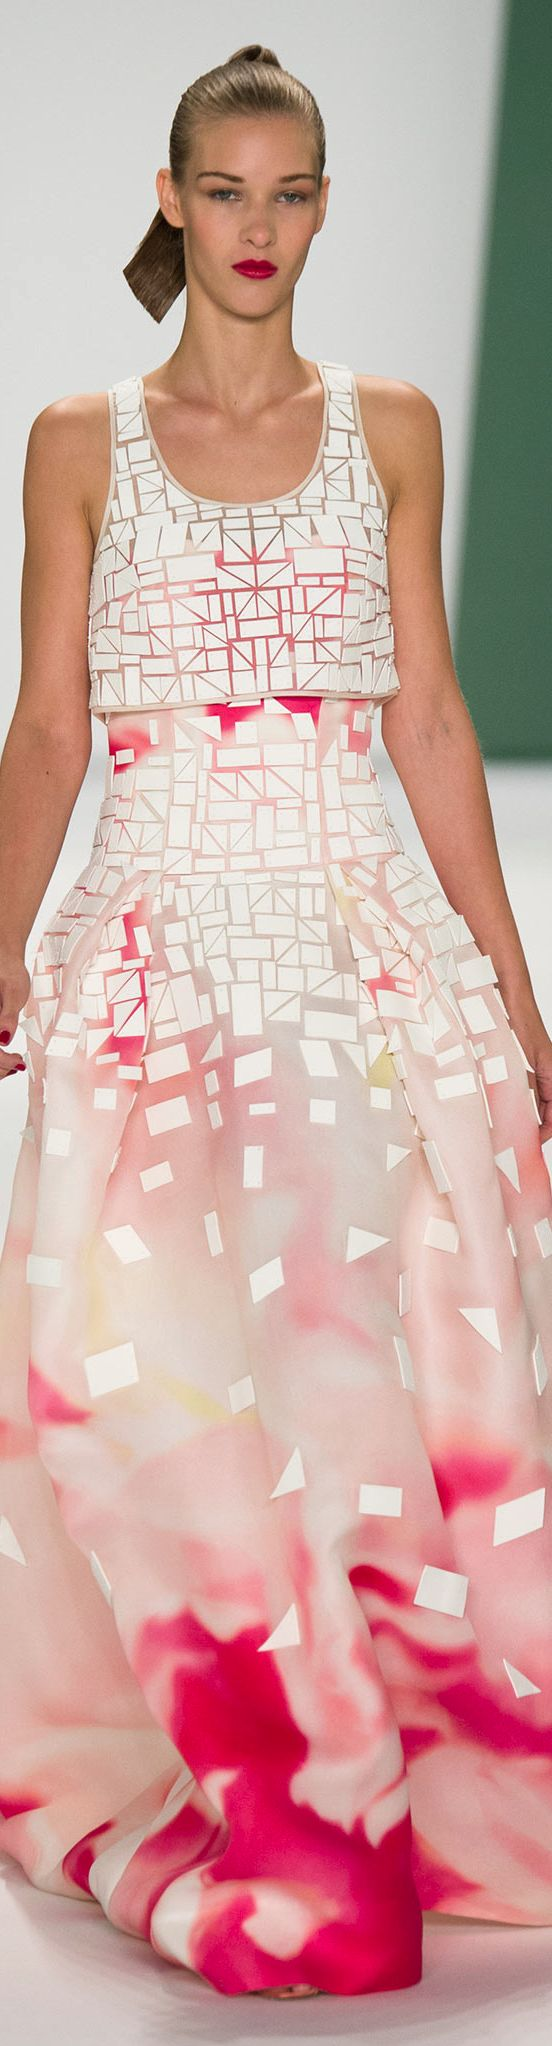 The mix of harsh geometric shapes and the soft, floral print is really interesting to me. Exciting graphic! I mean, I don't really like the dress design, but I think it could work better on me as a blouse or skirt.